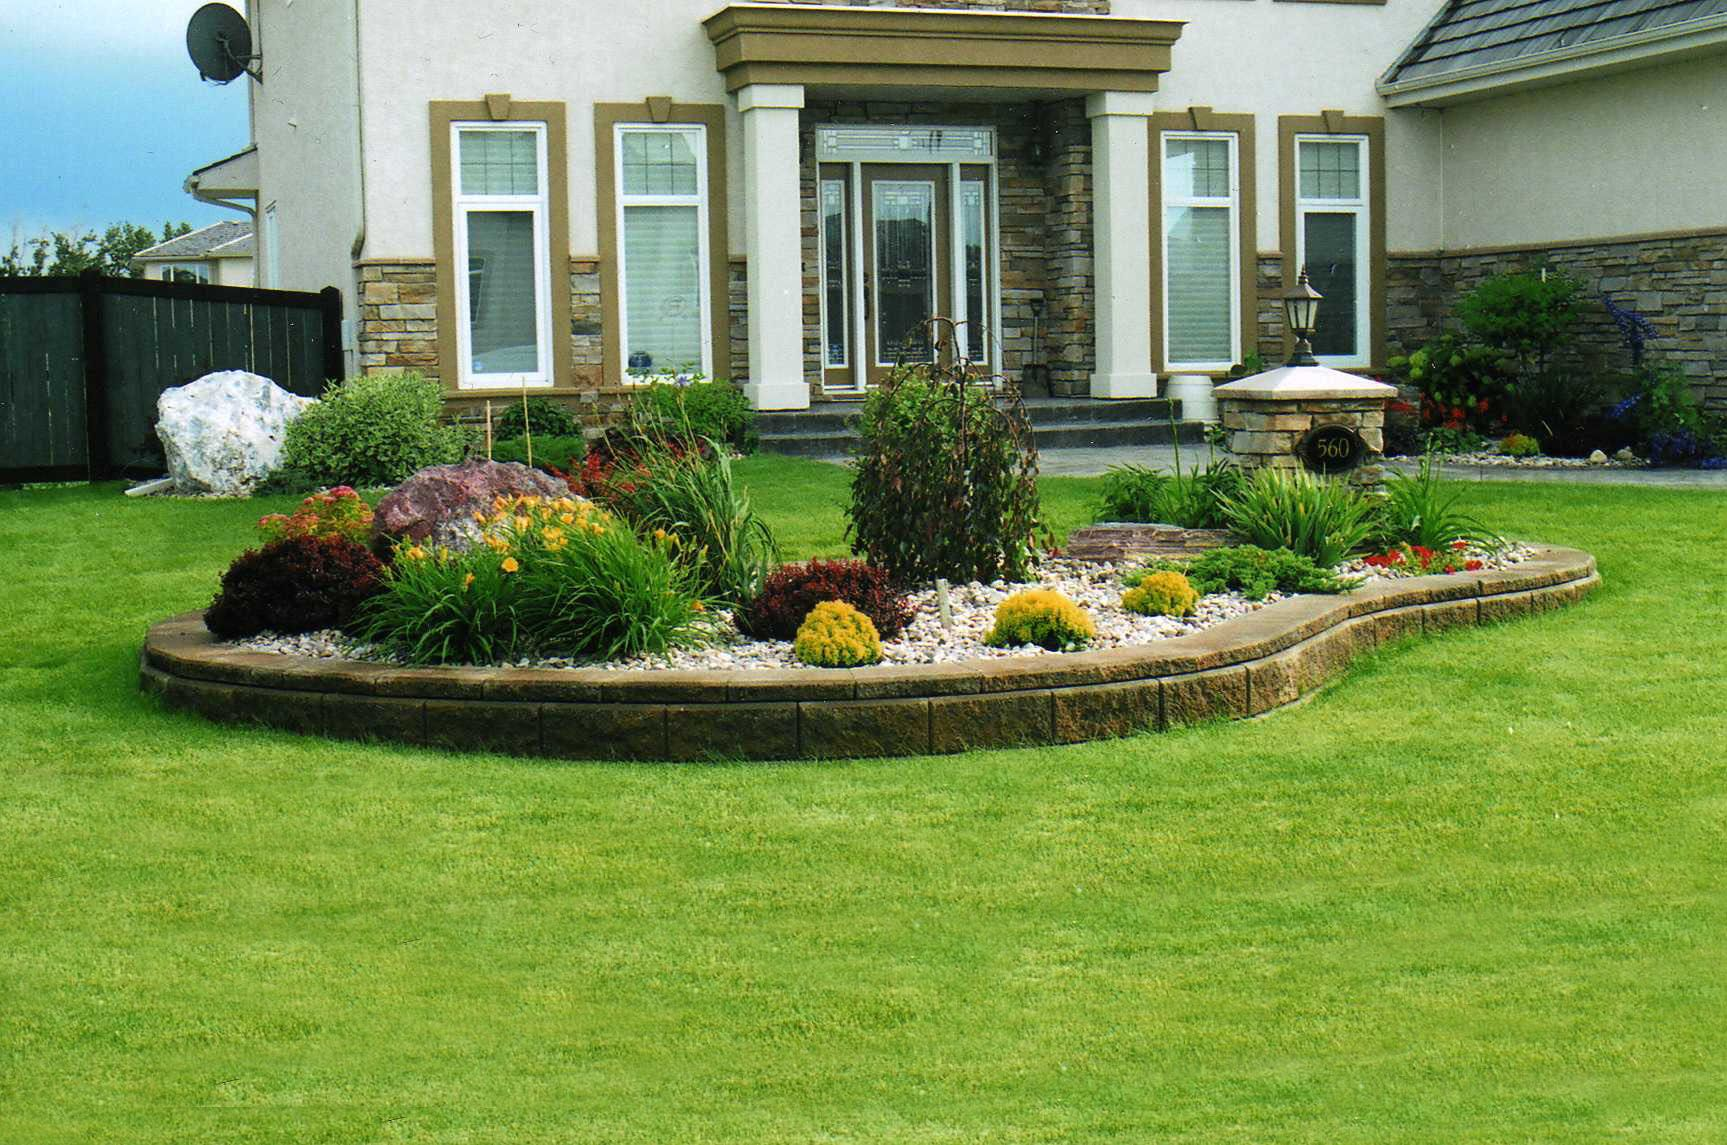 Flower bed landscaping ideas small flower bed garden for Outdoor garden ideas house